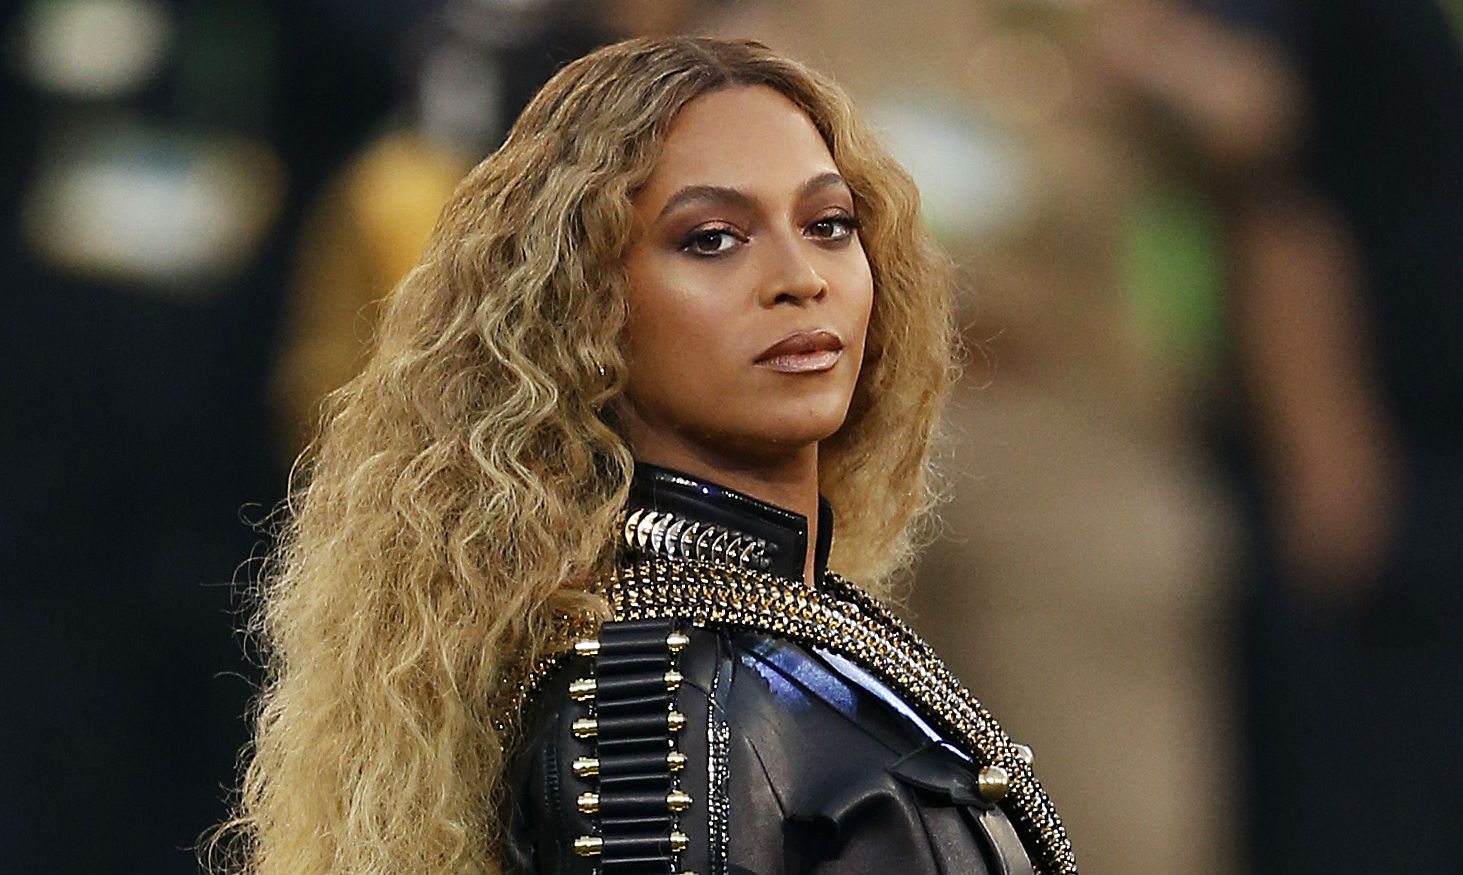 beyonce-formation-black-lives-matter-opinion.jpg